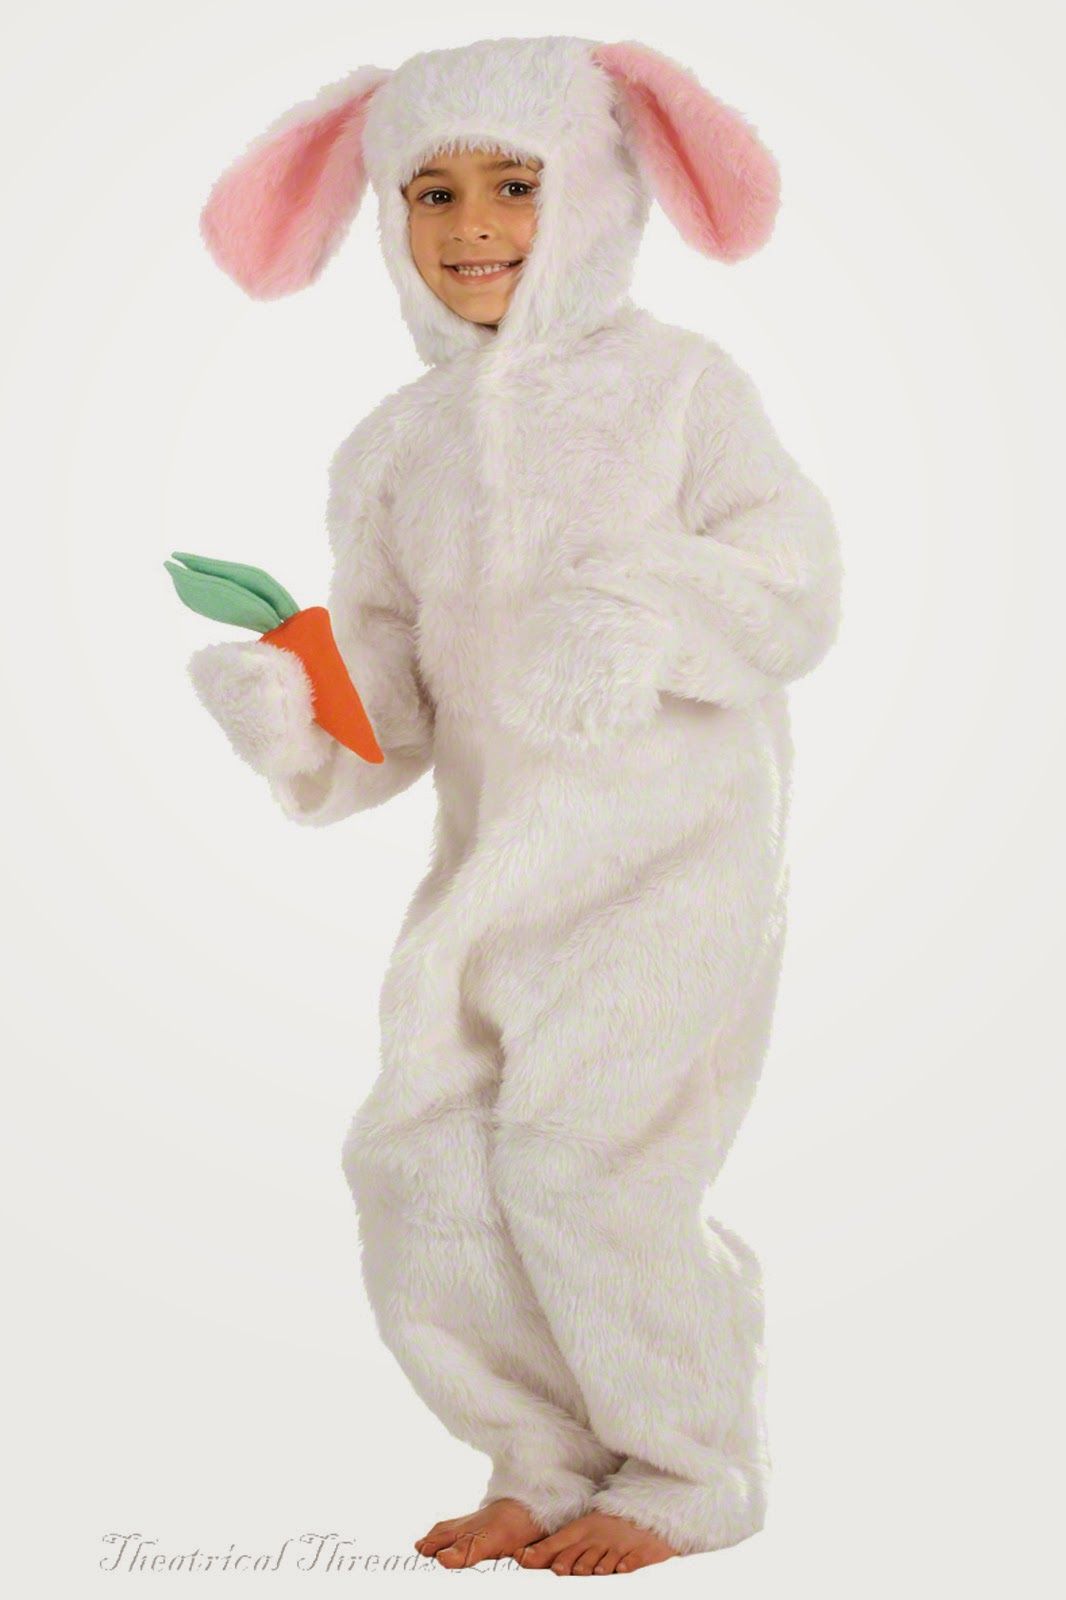 Kids White Rabbit Costume from Theatrical Threads